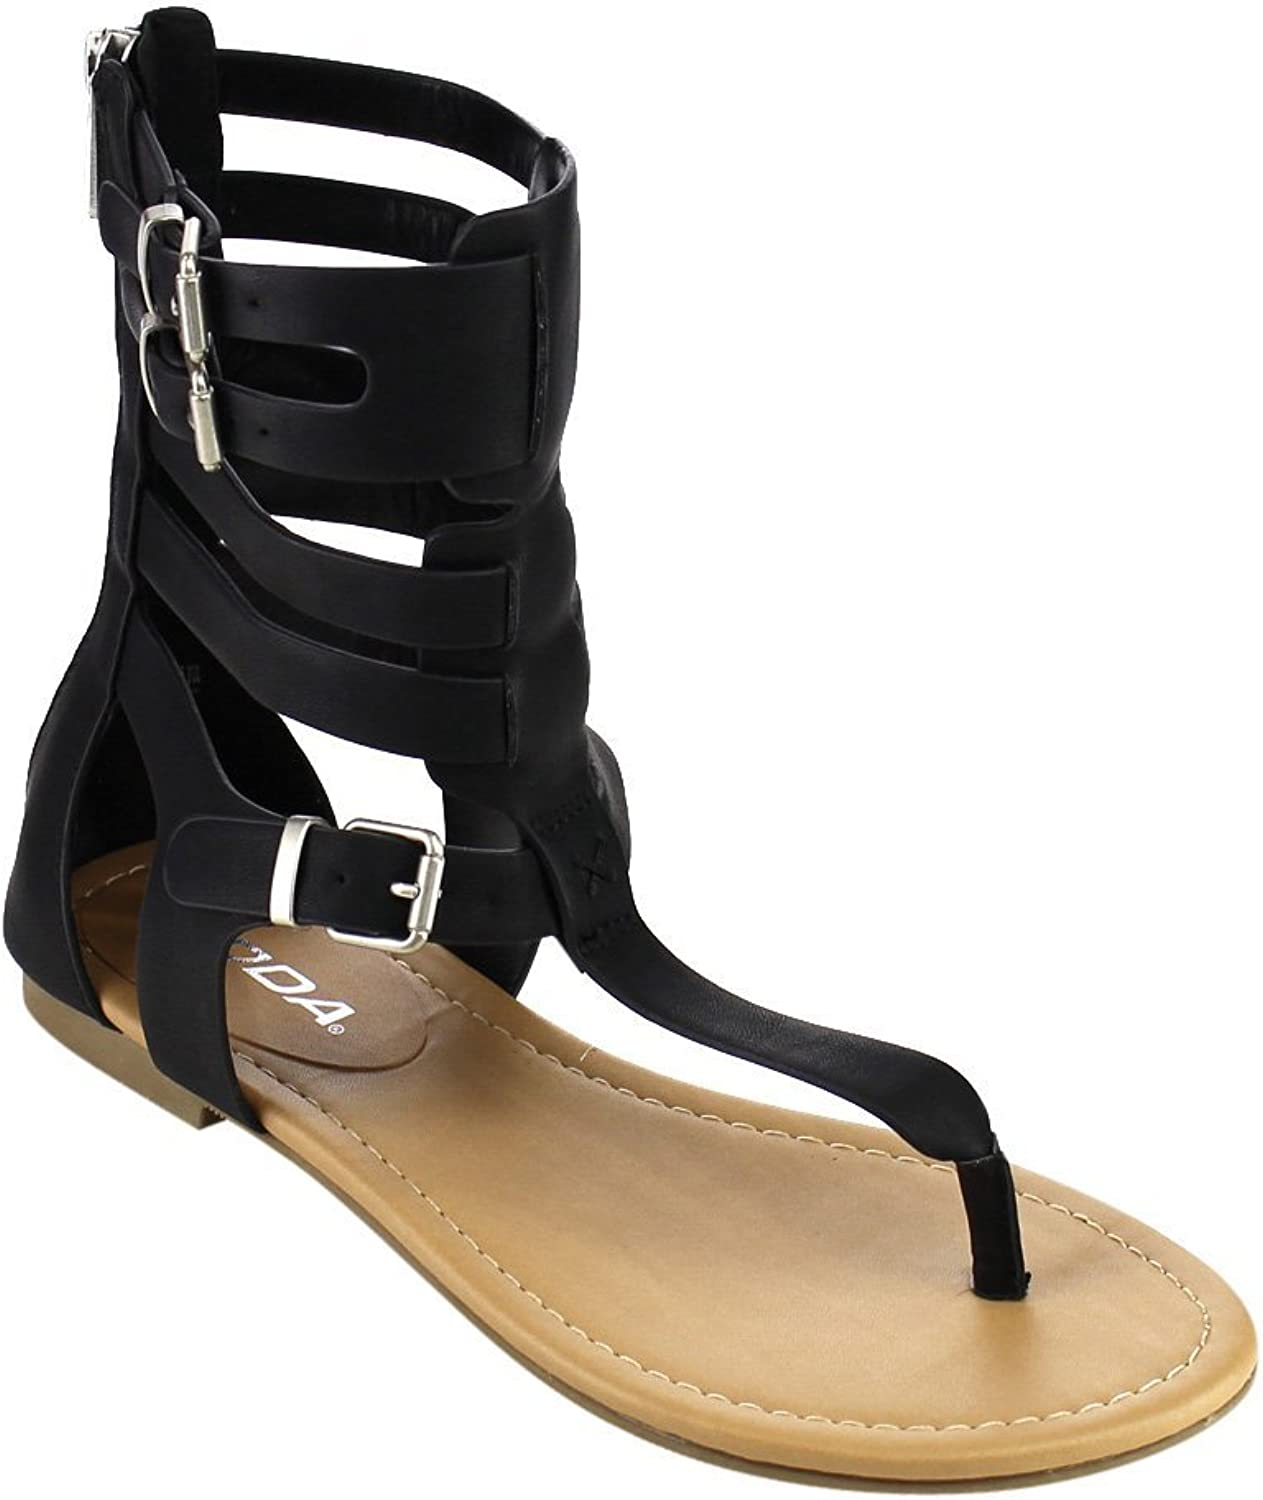 Soda Ronald Women's T-Strap Caged Buckled Flat Thong Sandals One Size Bigger